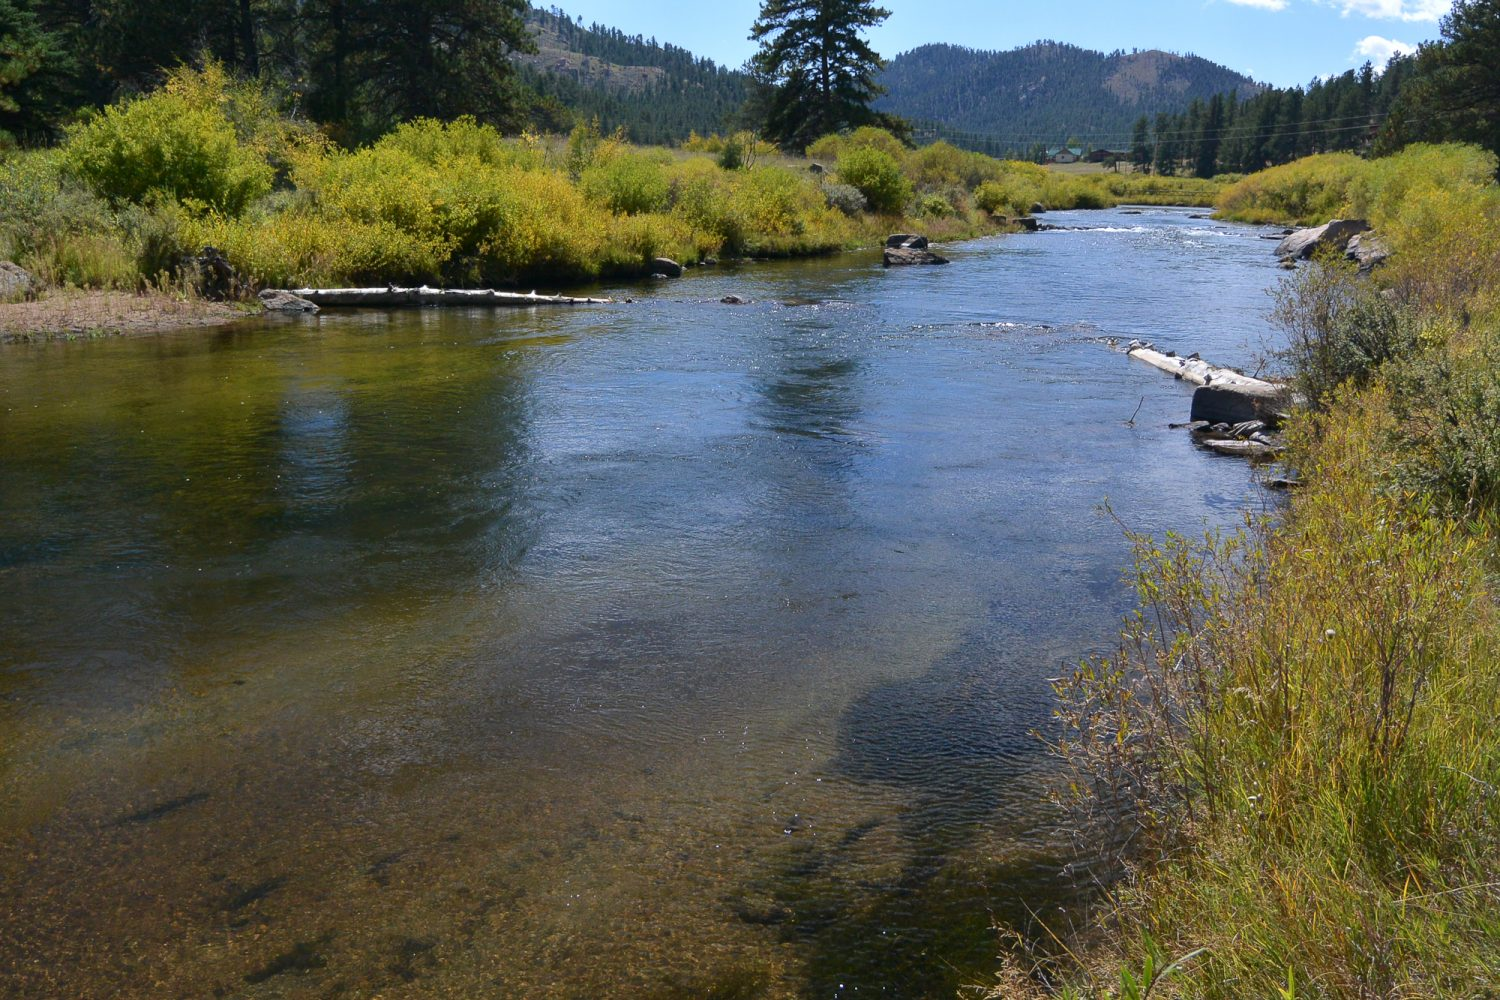 Upper South Platte River with log restoration structures